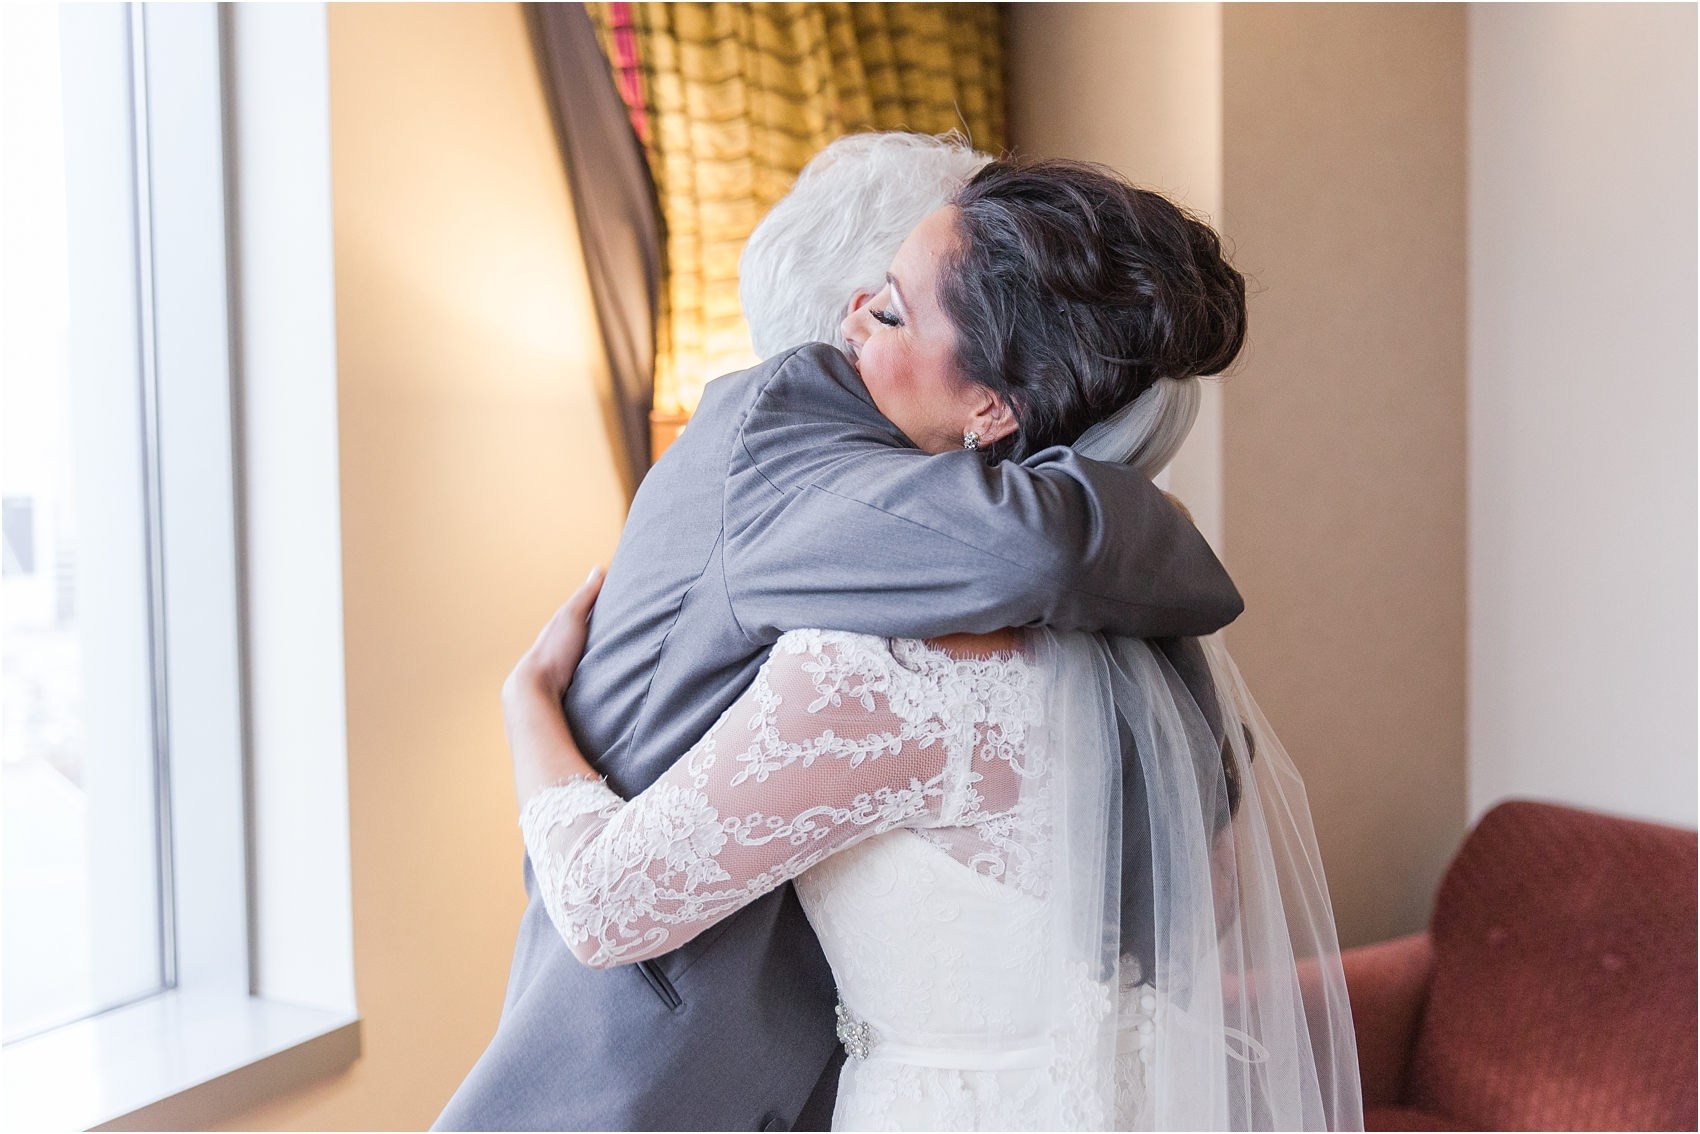 father-and-bride-share-emotional-first-look-on-wedding-day-photos-in-detroit-michigan-by-courtney-carolyn-photography_0035.jpg